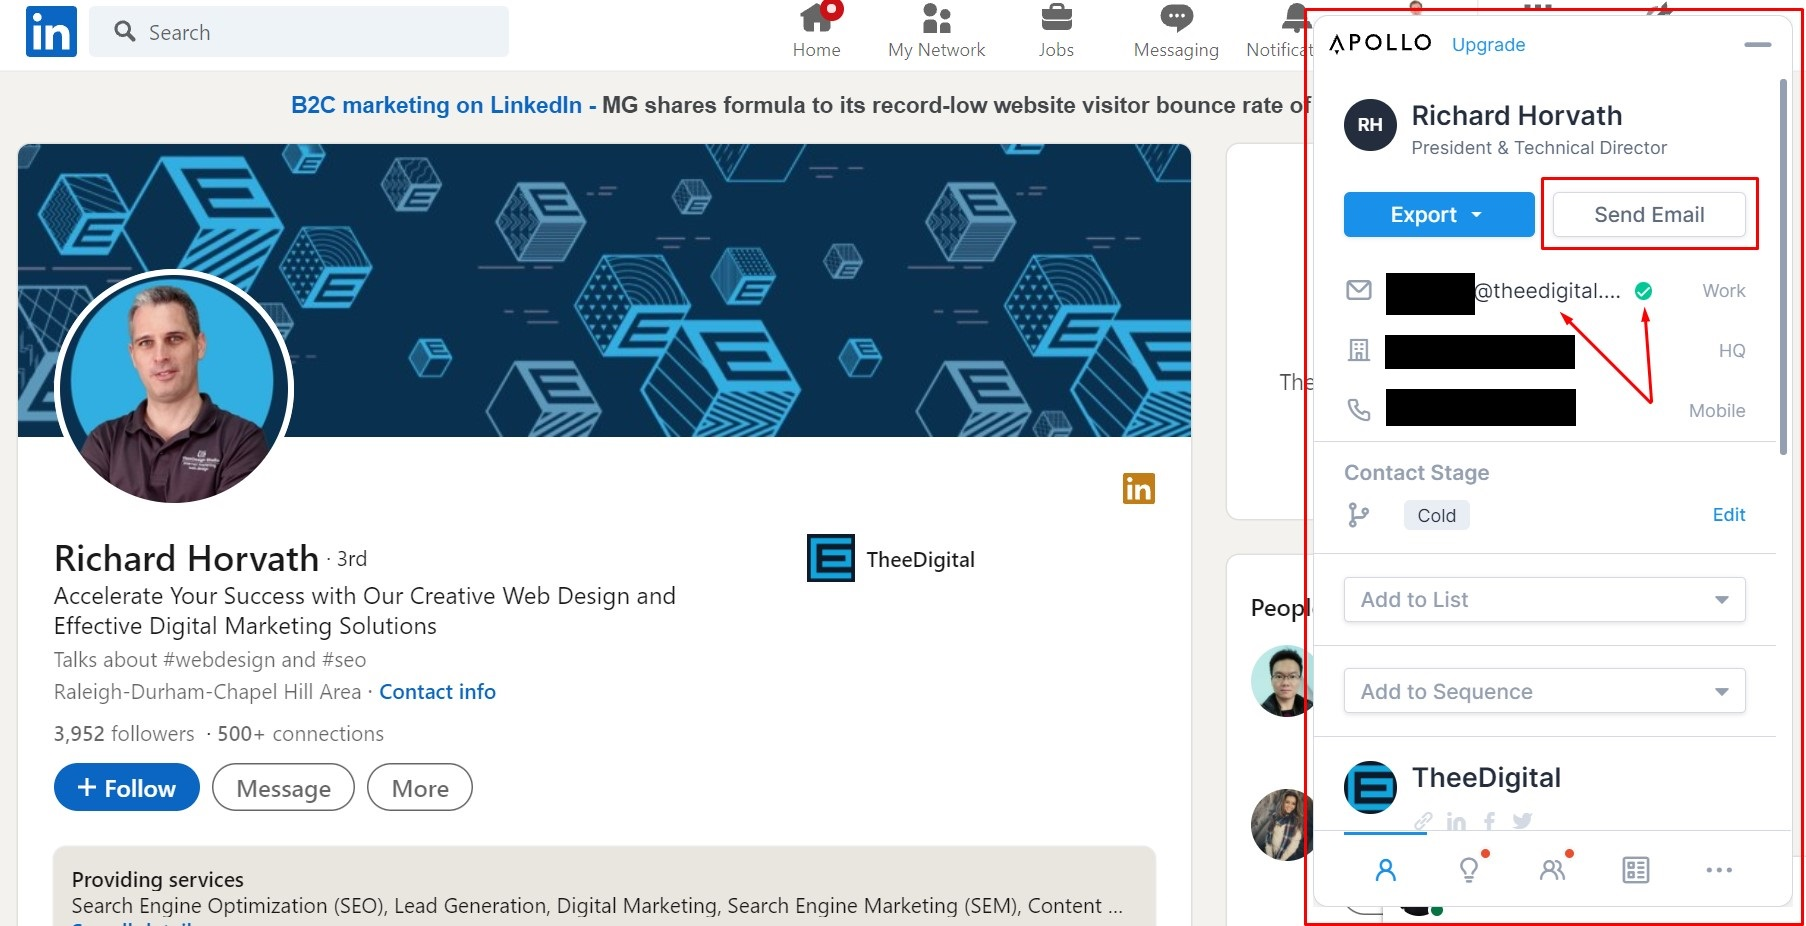 apollo.io gives information from linkedin profile even email address